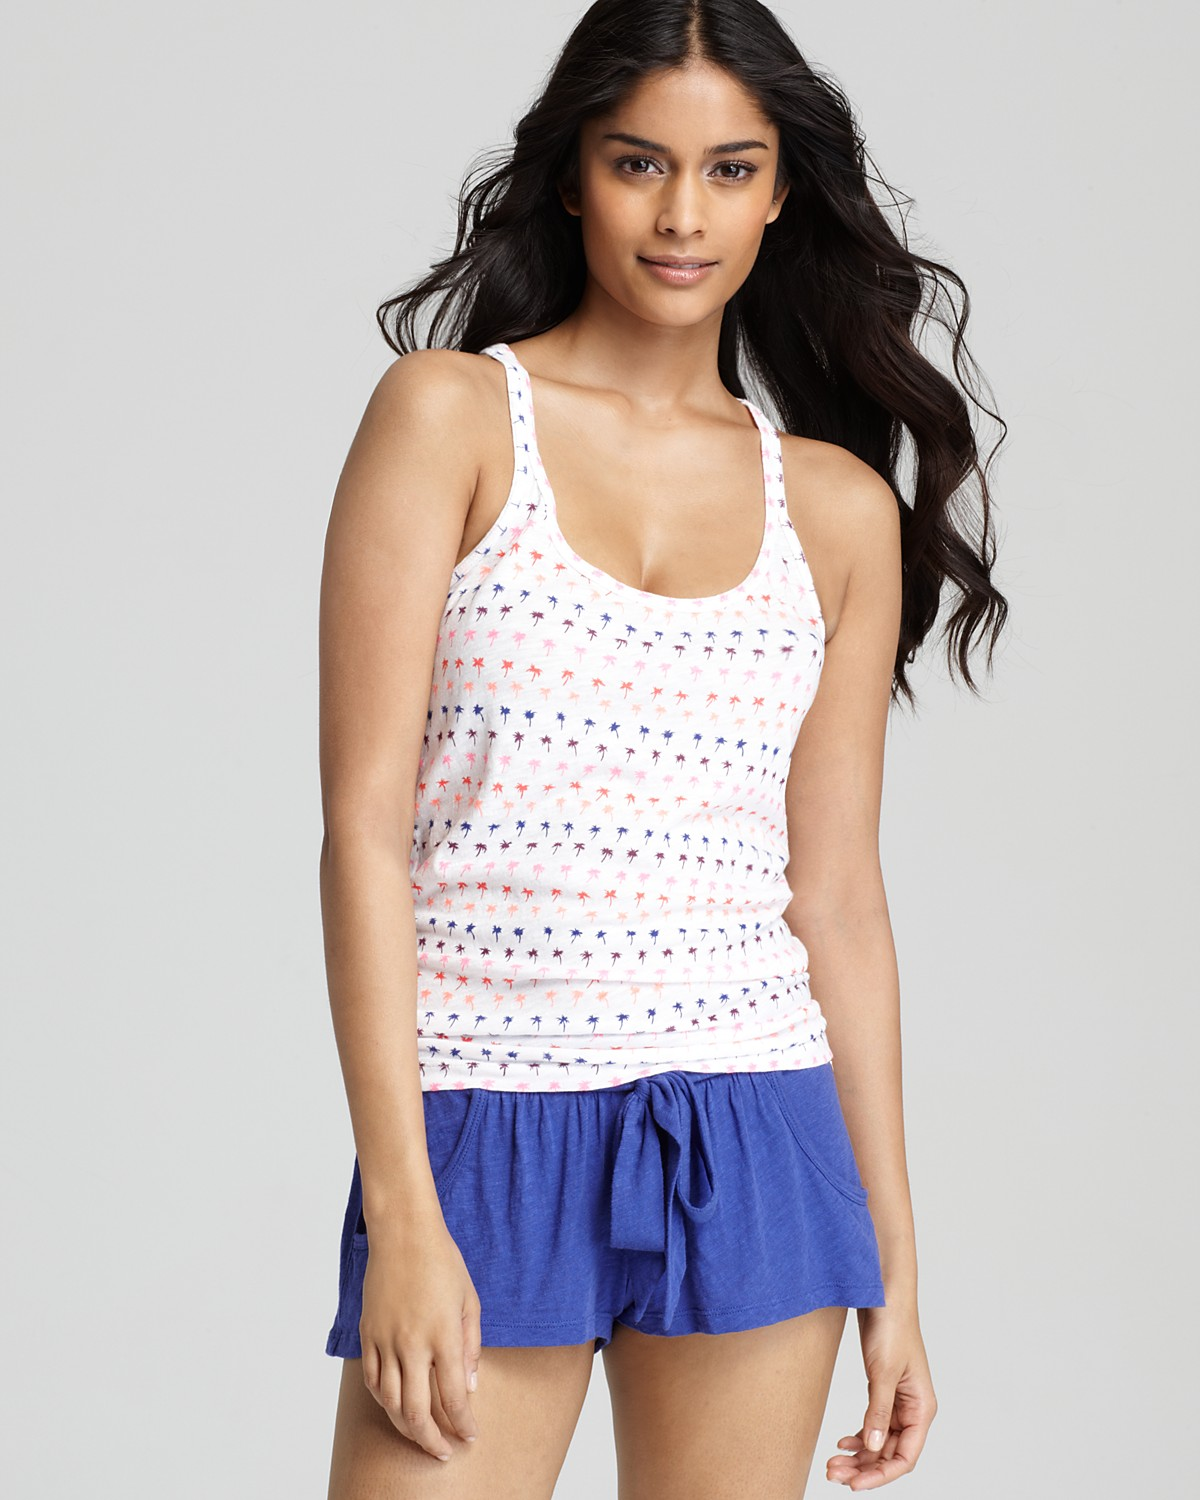 ... Palm Tree Print Racerback Tank Top and Pajama Shorts | Bloomingdale's